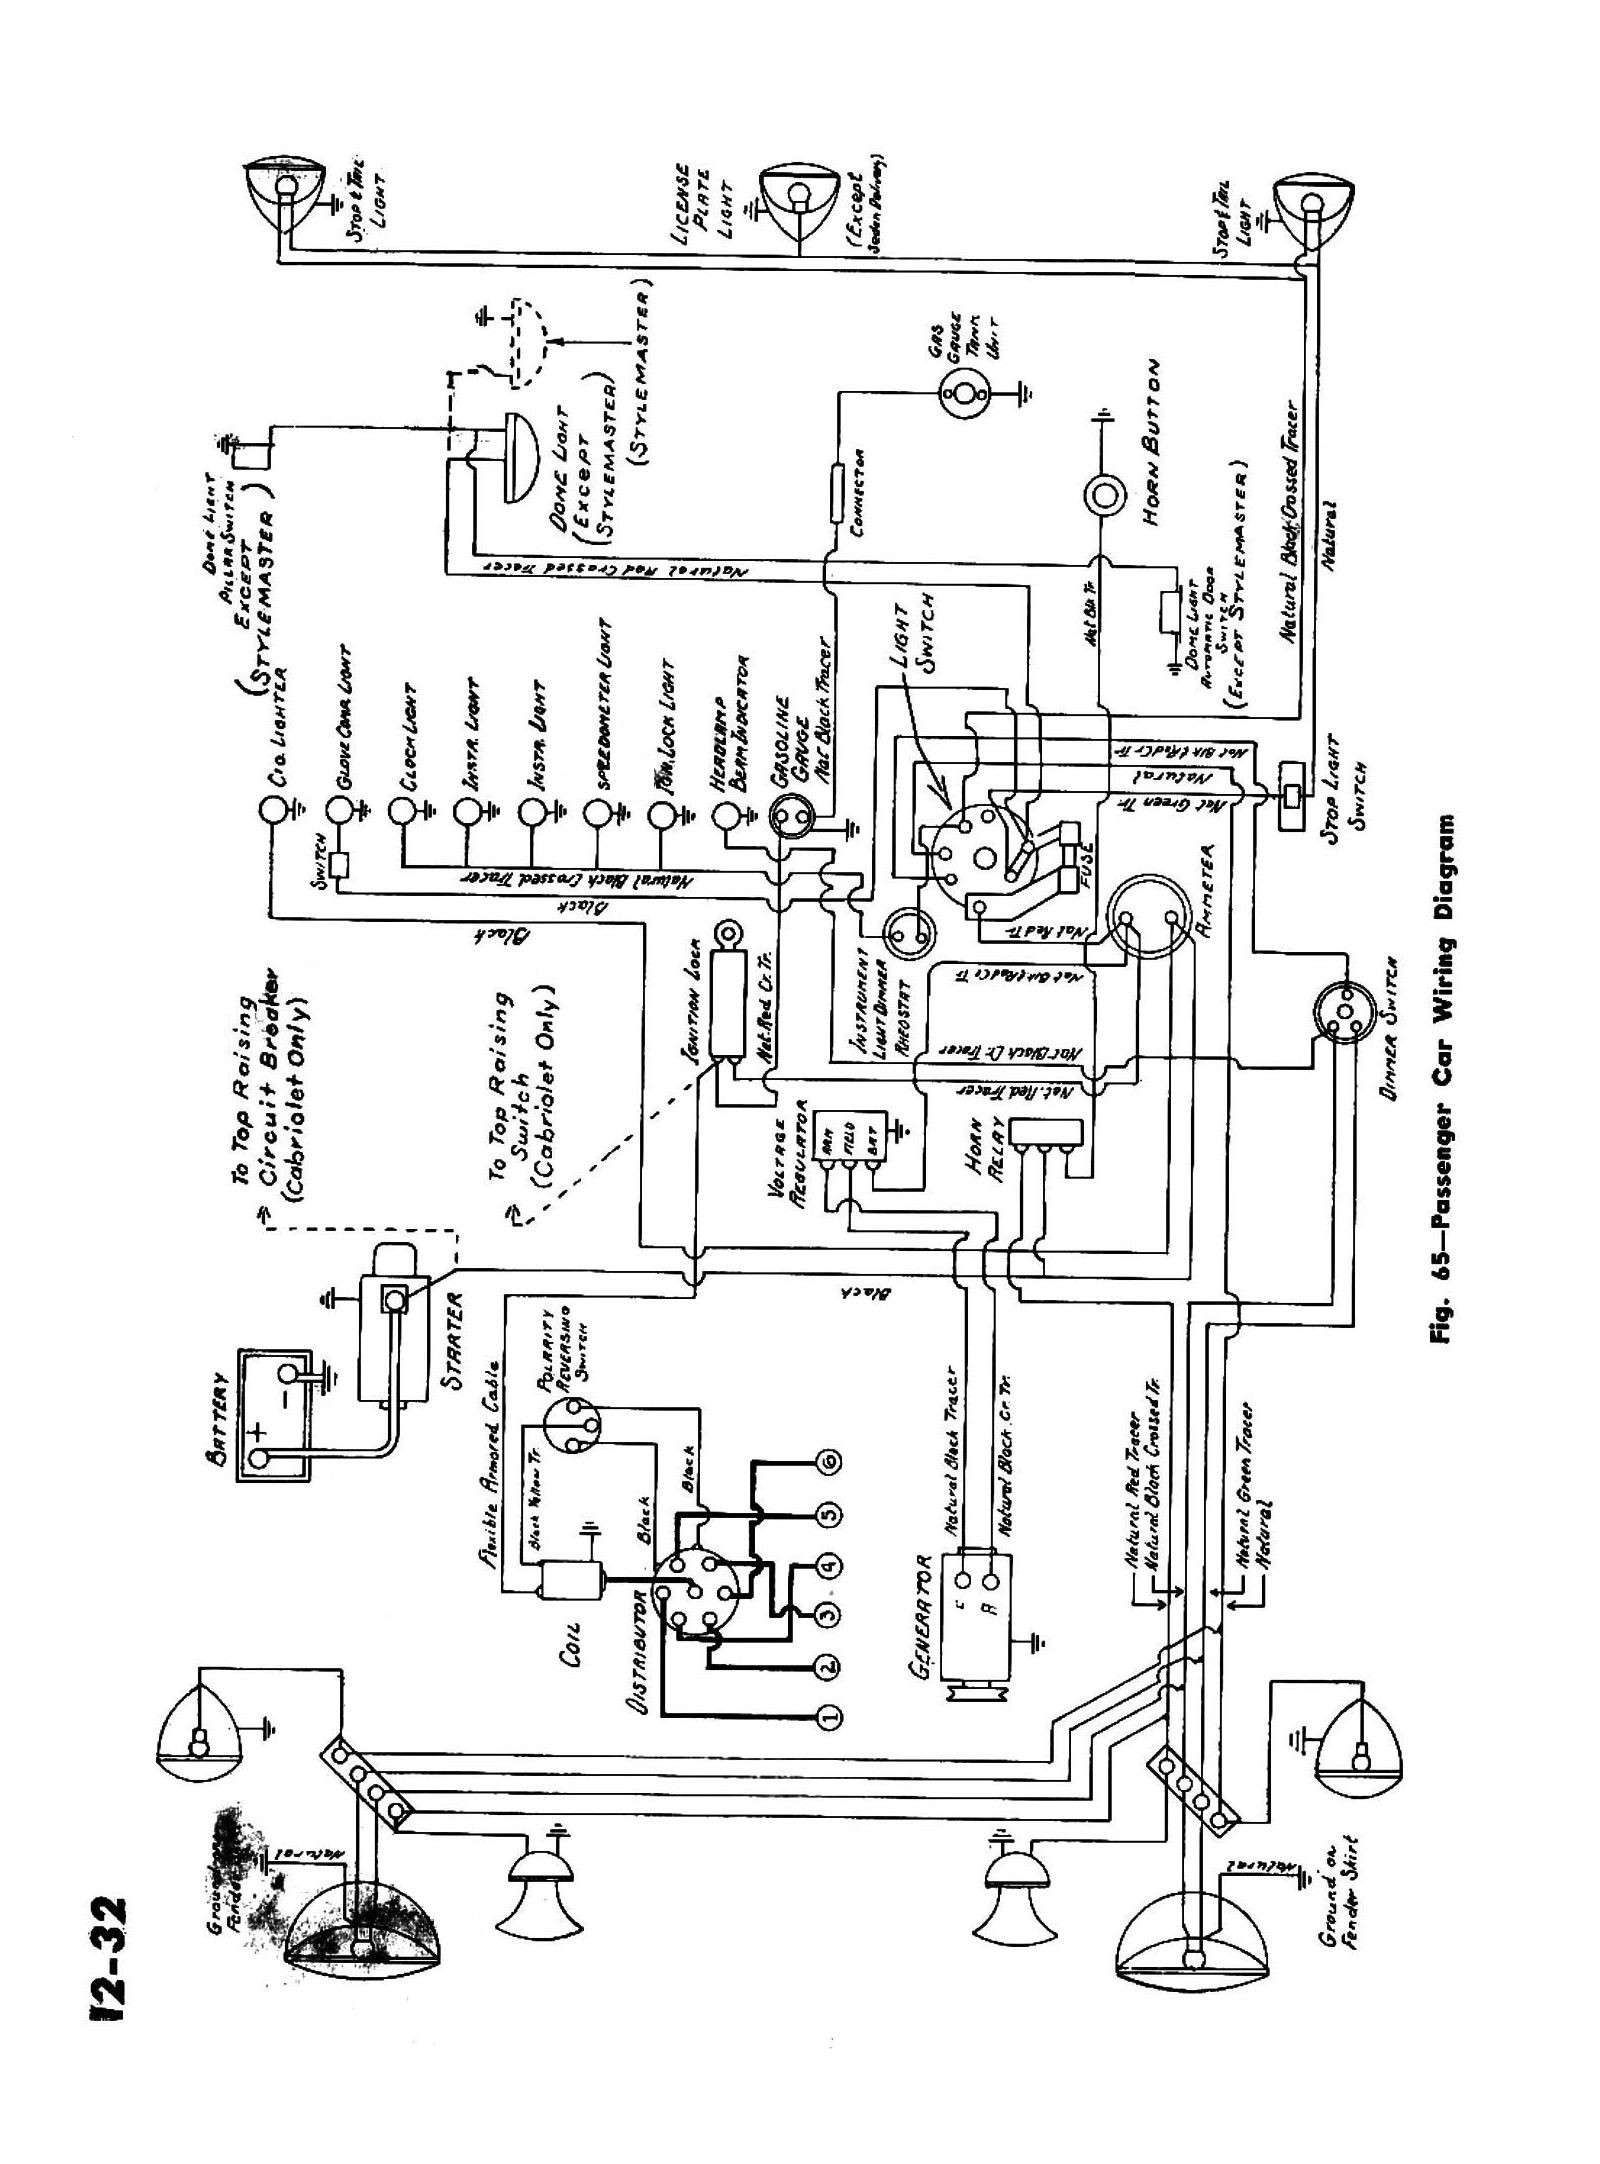 Wiring Diagram Cars Trucks Wiring Diagram Cars Trucks Truck Horn Wiring Wiring Diagrams Electrical Wiring Diagram Electrical Diagram Diagram